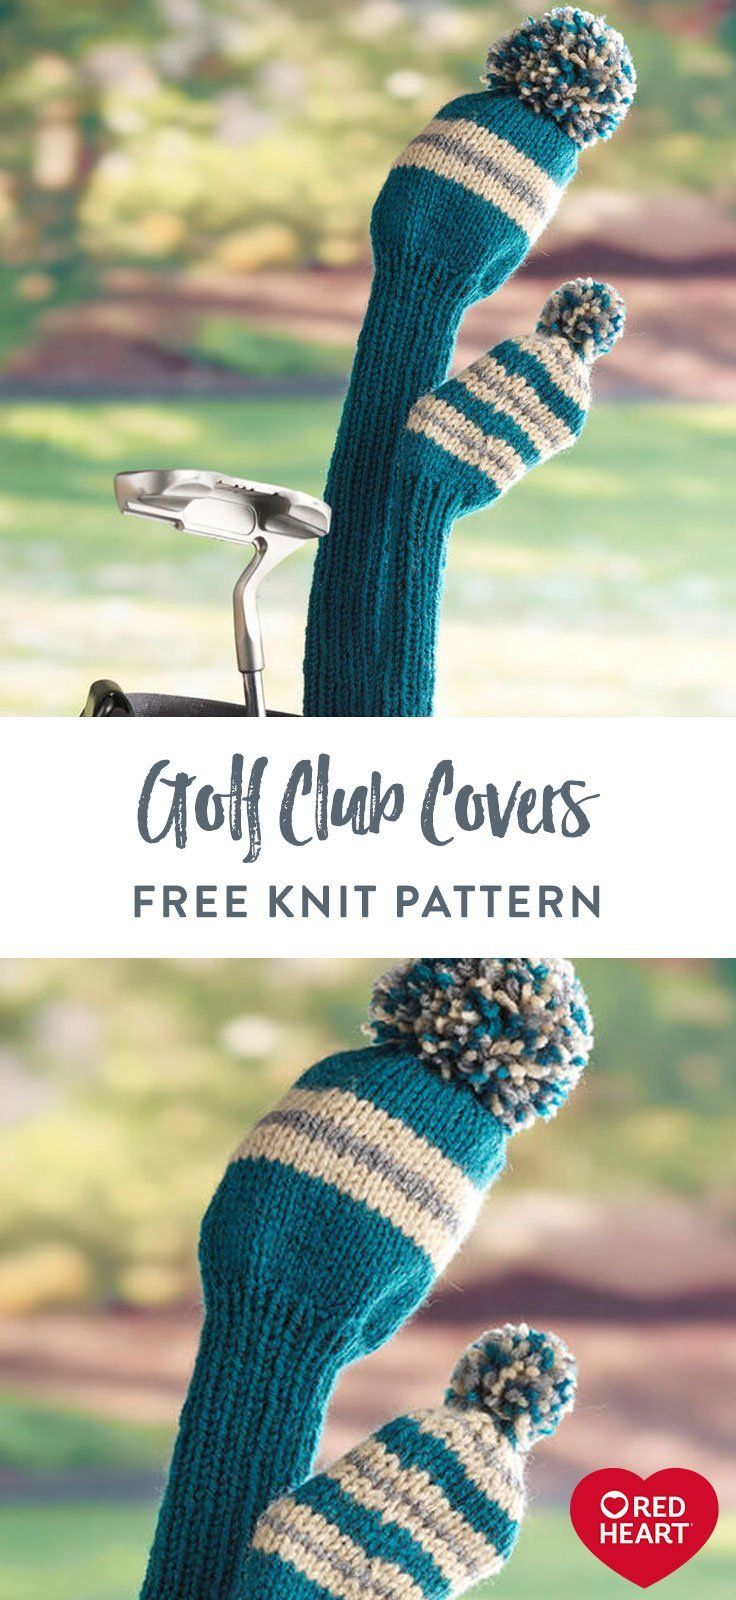 Golf Club Covers free knit pattern in Red Heart Super ...